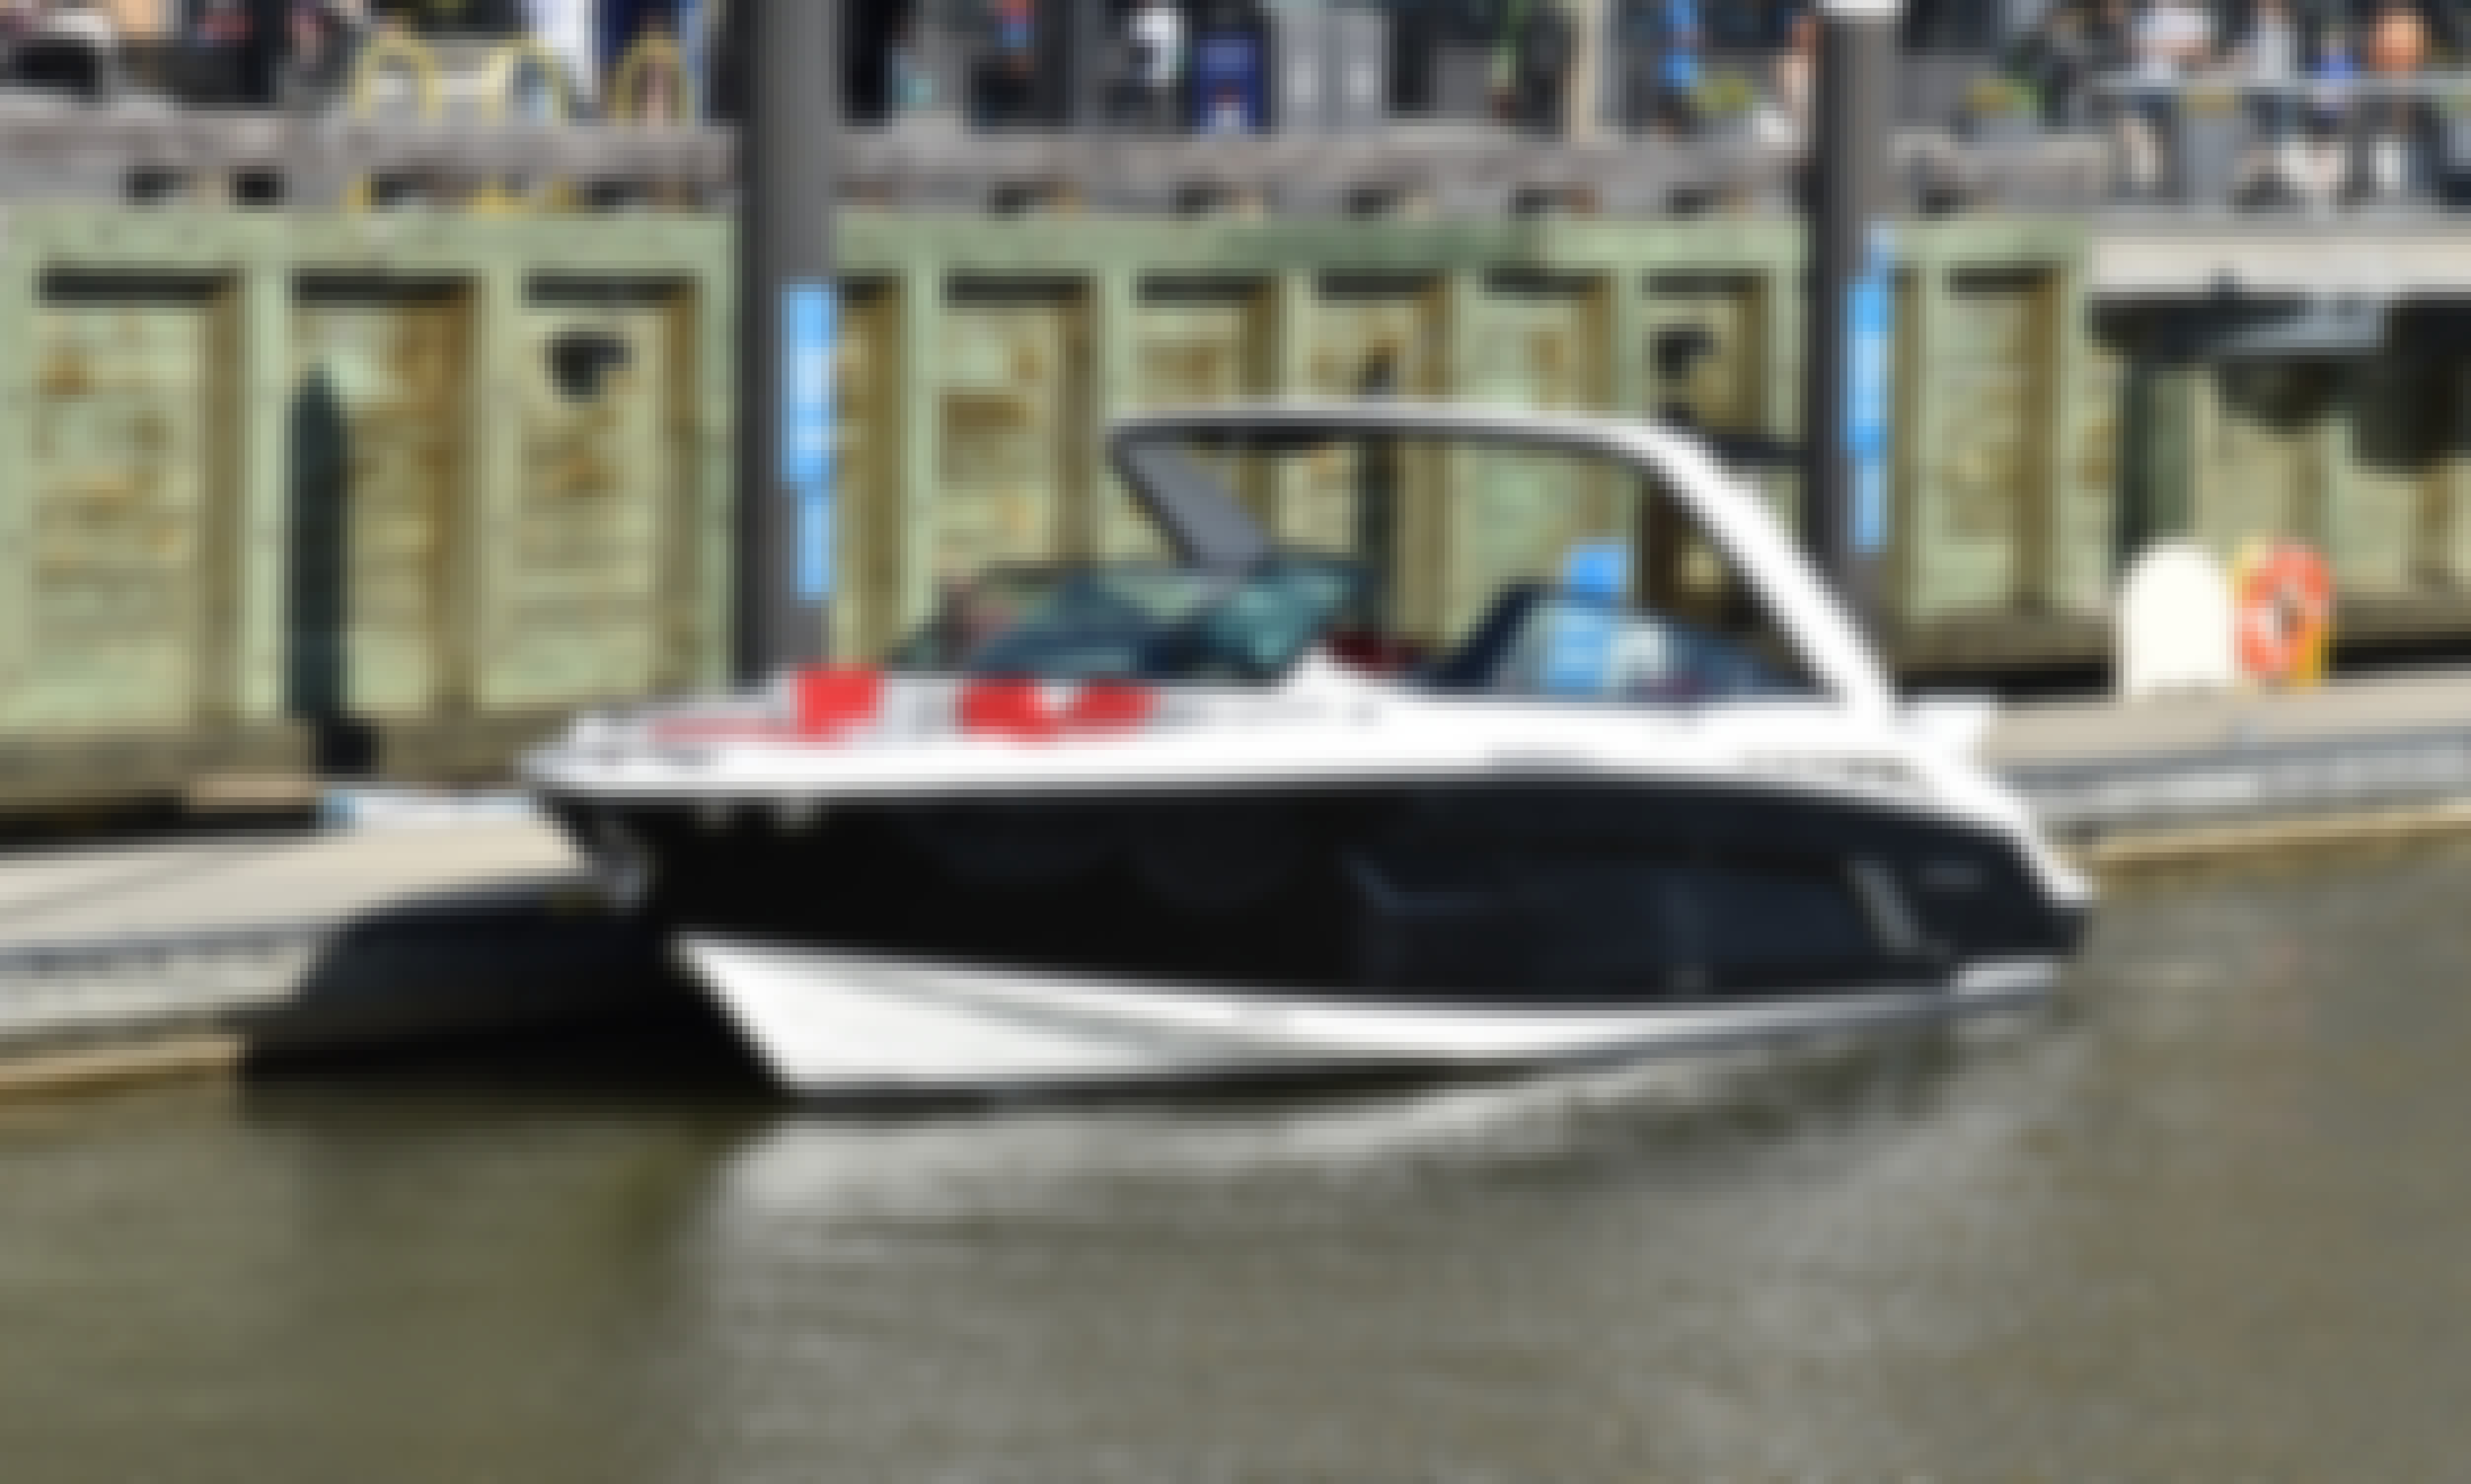 Cruisers Sport Series 328 Yacht! Premium Boating at DCs best Waterfront Destinations